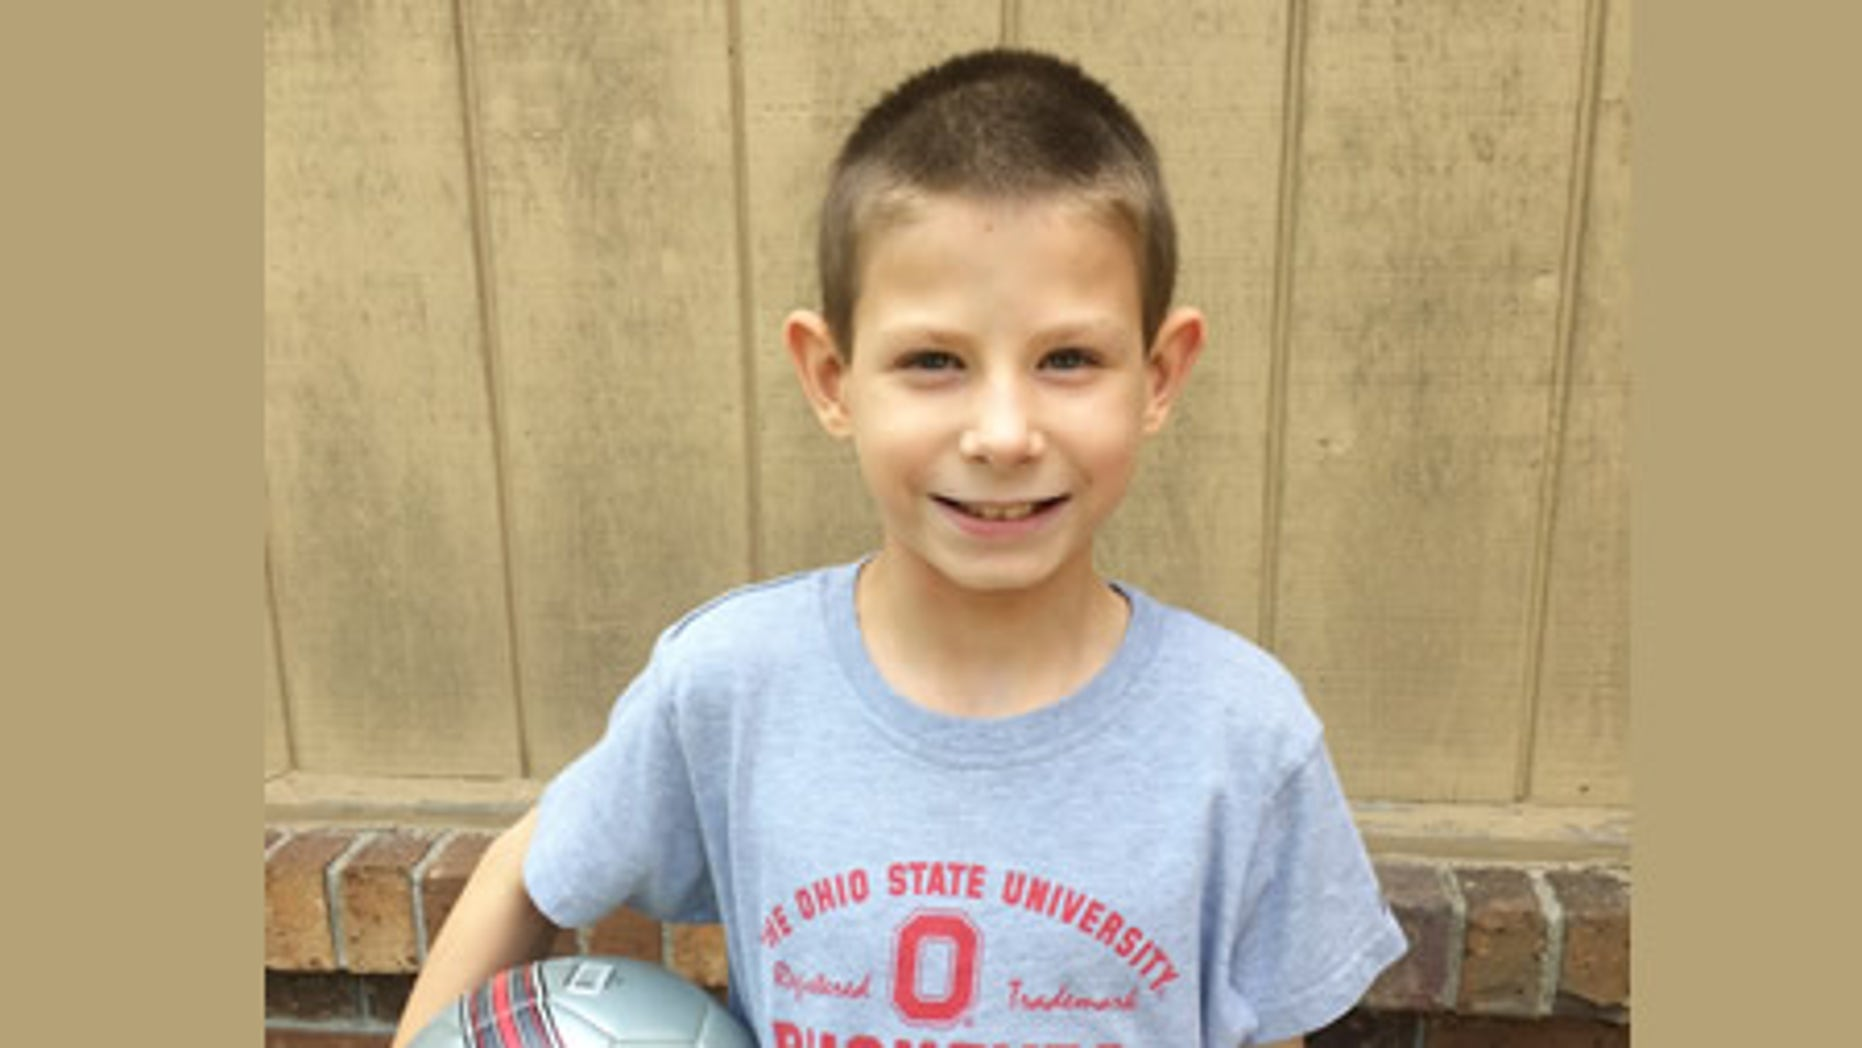 Ivan Applin, 10, wanted to be sure that his cardiac surgery wouldn't make his repaired heart root for Michigan over Ohio State.